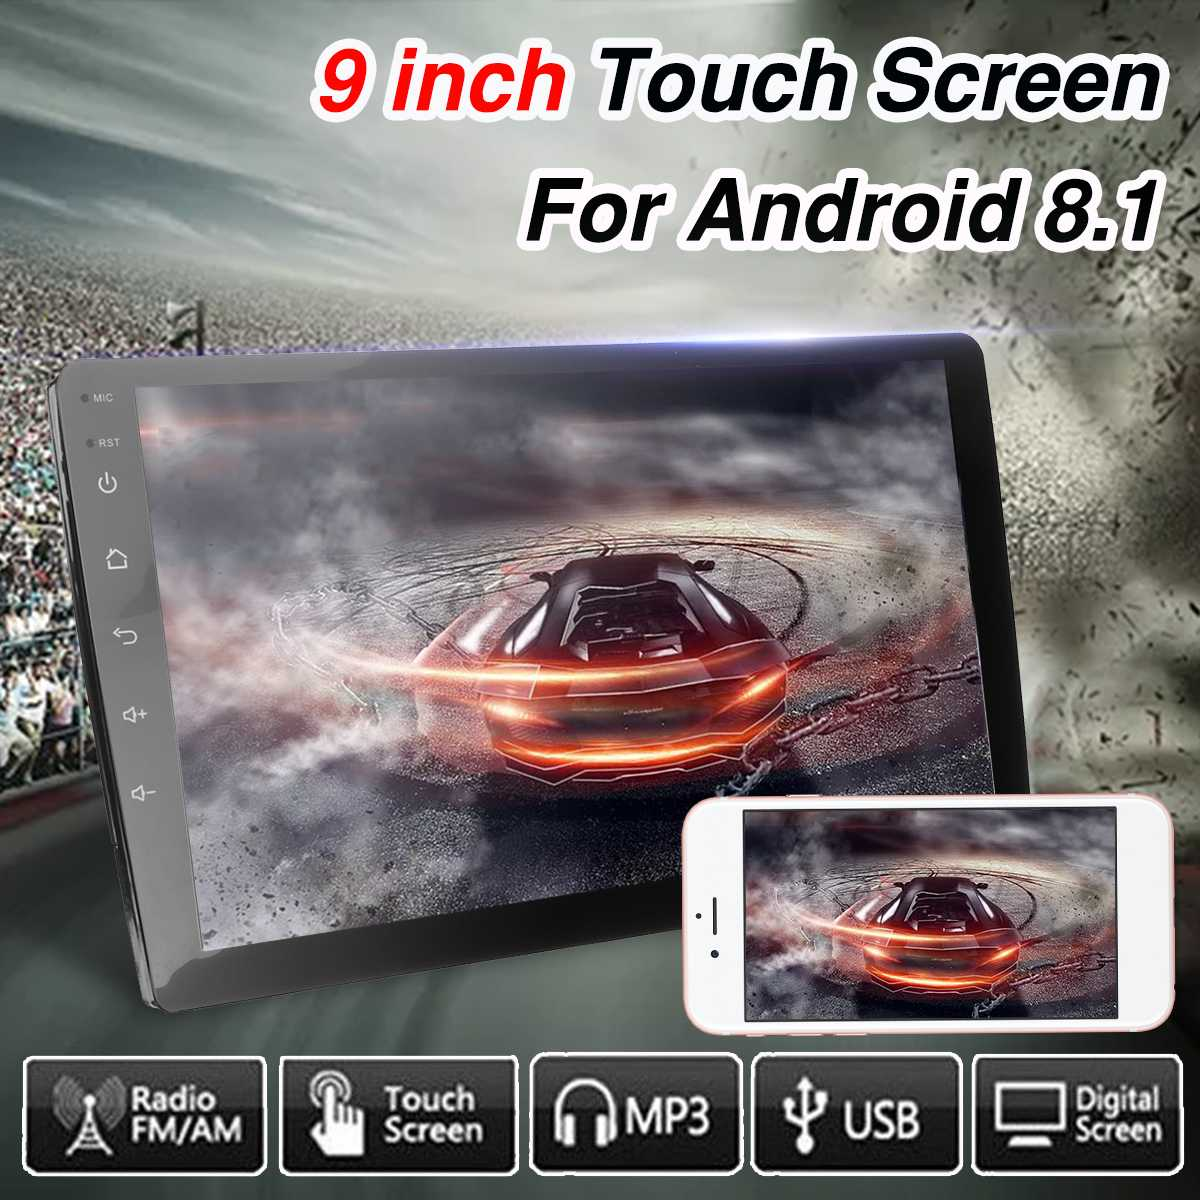 2 DIN 9 Android 8.1 4K Car MP5 Player Quad Core WiFi GPS Navigation DAB FM Radio Touchable Screen Mirrorlink Multimedia Player2 DIN 9 Android 8.1 4K Car MP5 Player Quad Core WiFi GPS Navigation DAB FM Radio Touchable Screen Mirrorlink Multimedia Player